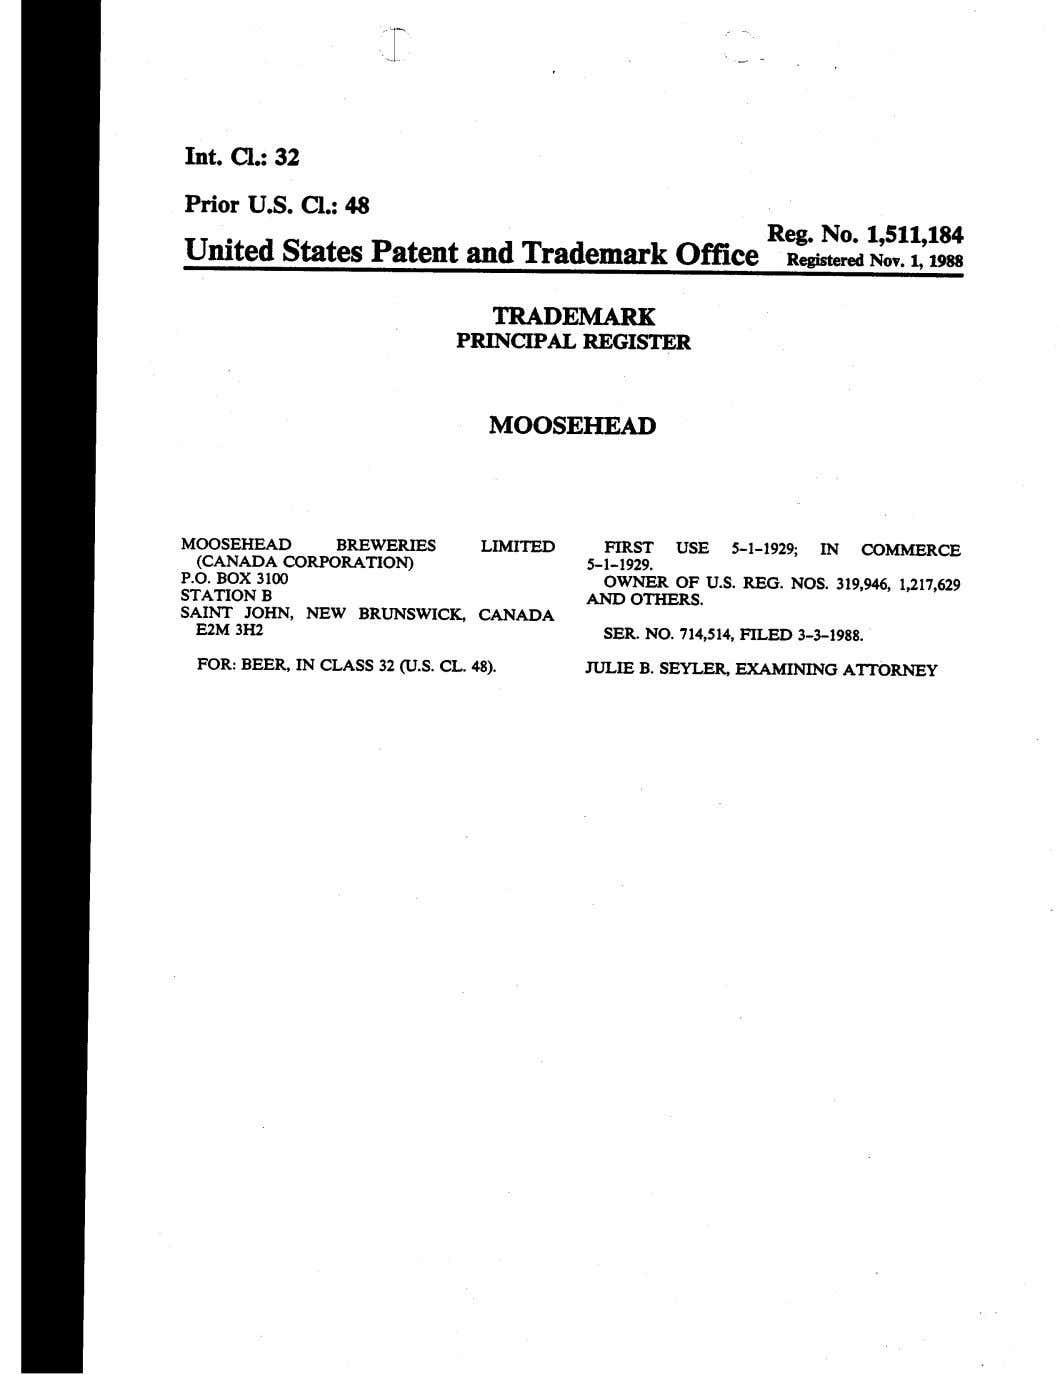 Case 1:15-cv-00260-GTS-RFT Document 29 Filed 06/26/15 Page 16 of 26